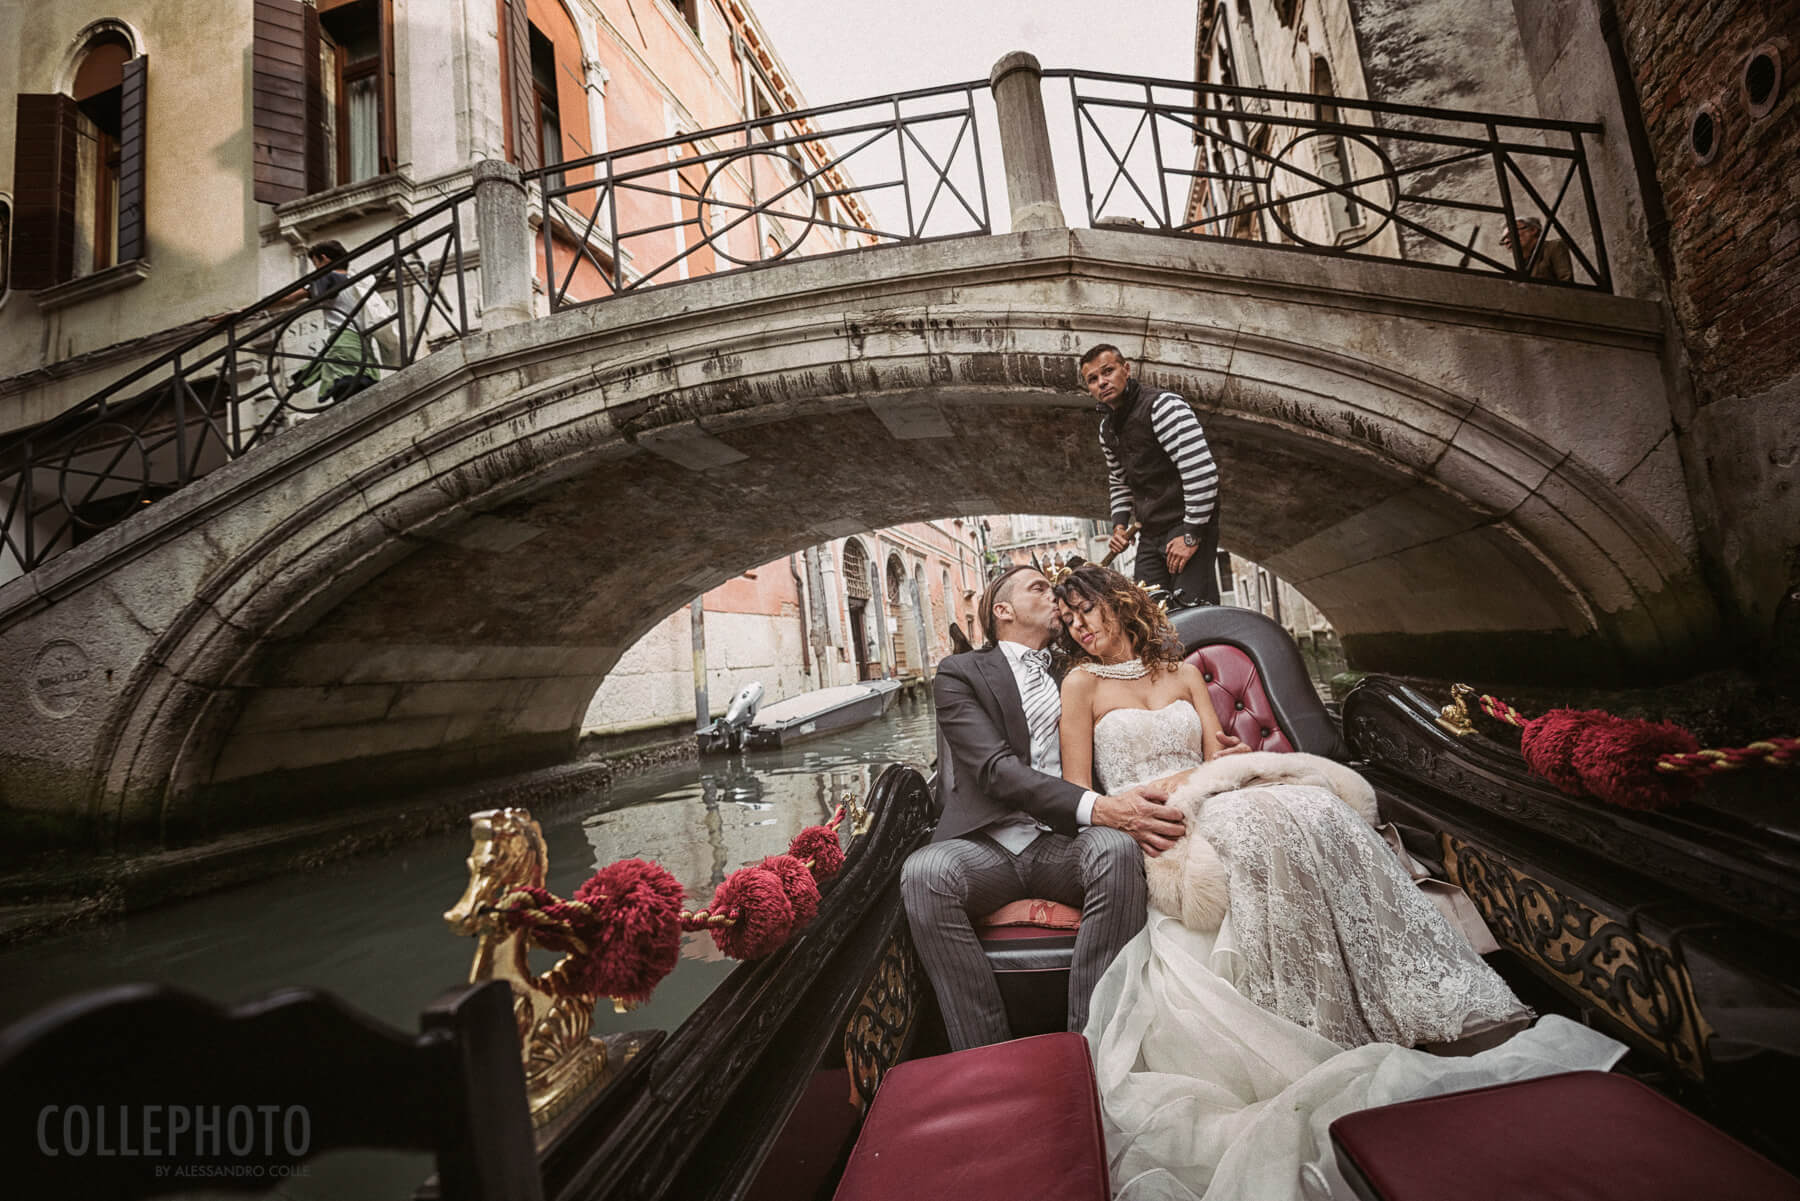 Sabrina e Francesco - Matrimonio a Venezia Wedding 34